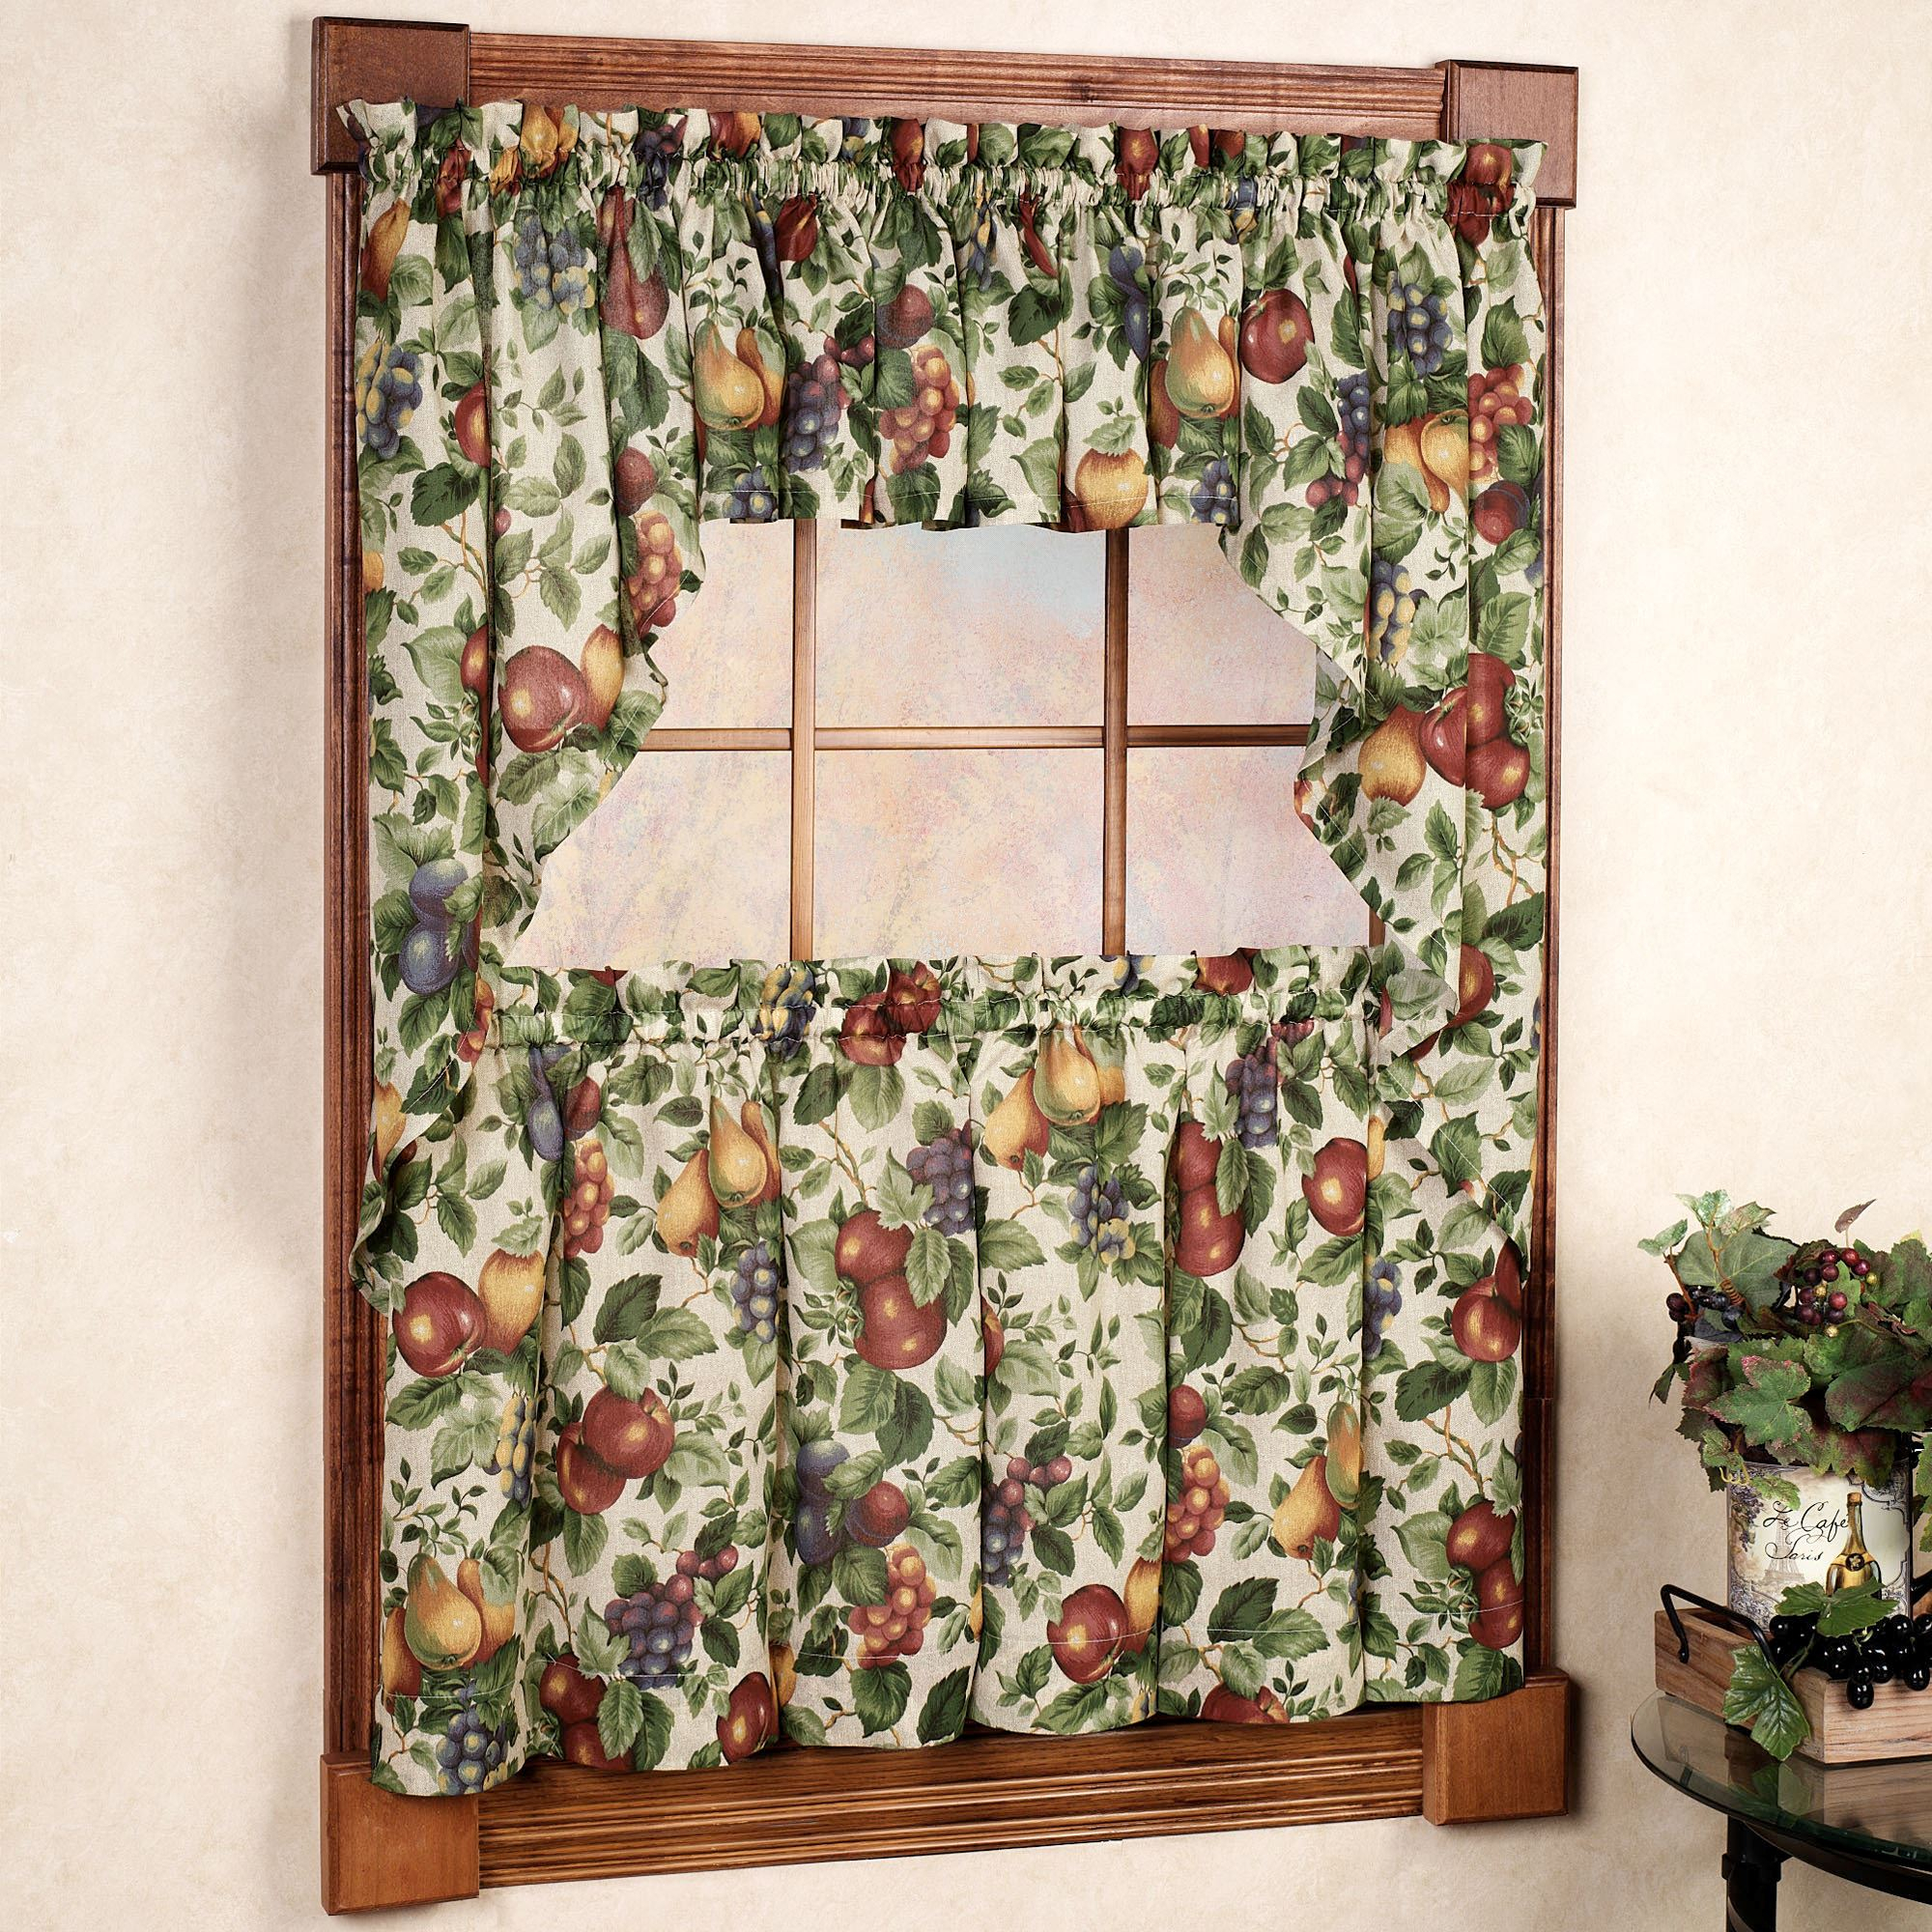 Sonoma Fruit Tier Window Treatments Intended For Apple Orchard Printed Kitchen Tier Sets (View 5 of 20)